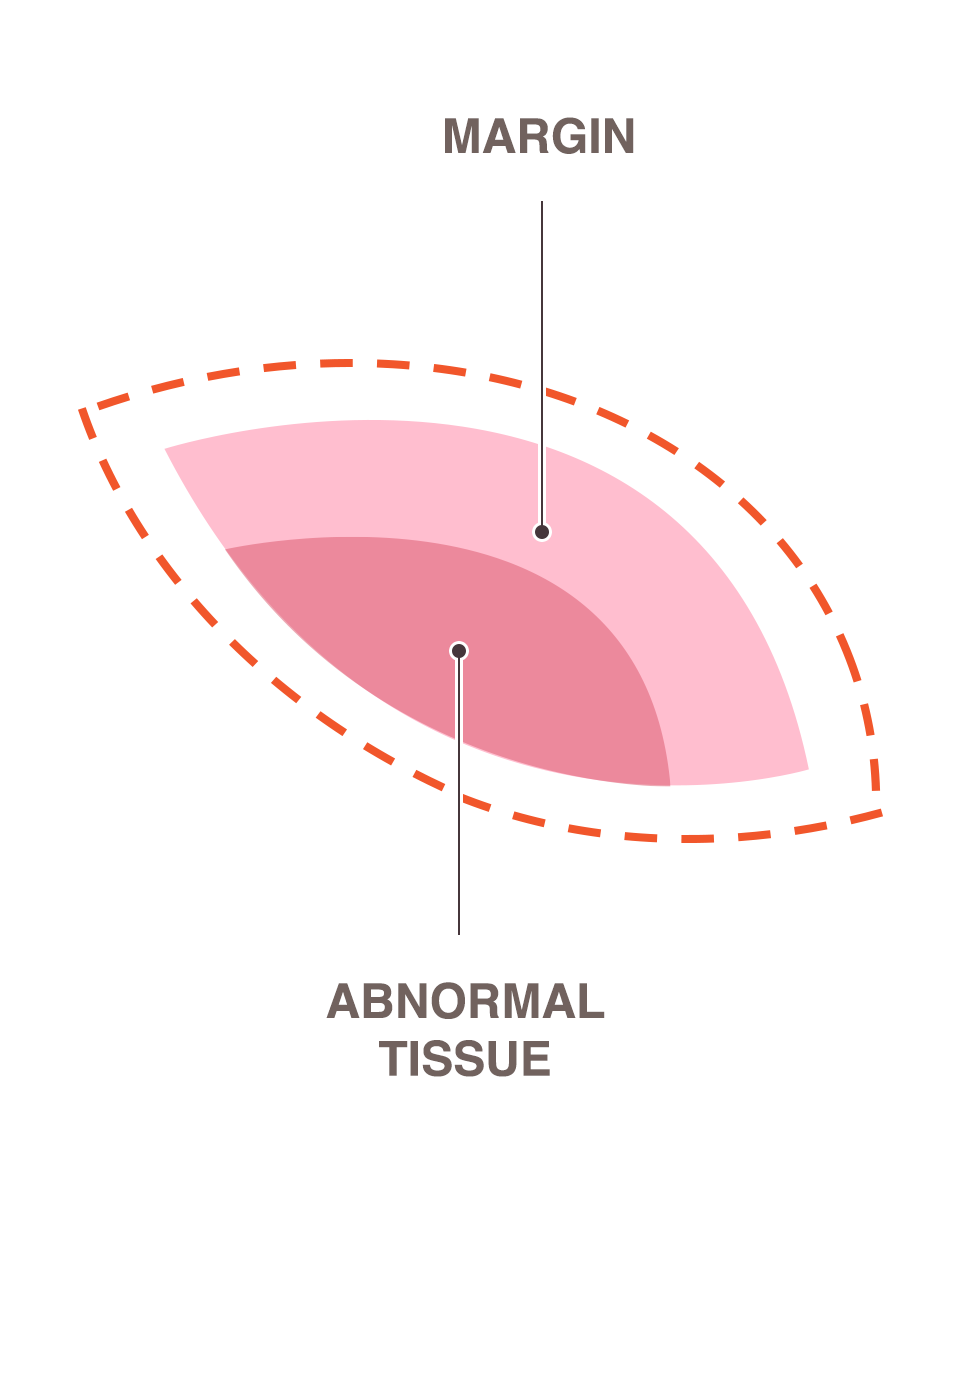 margin and abnormal tissue.